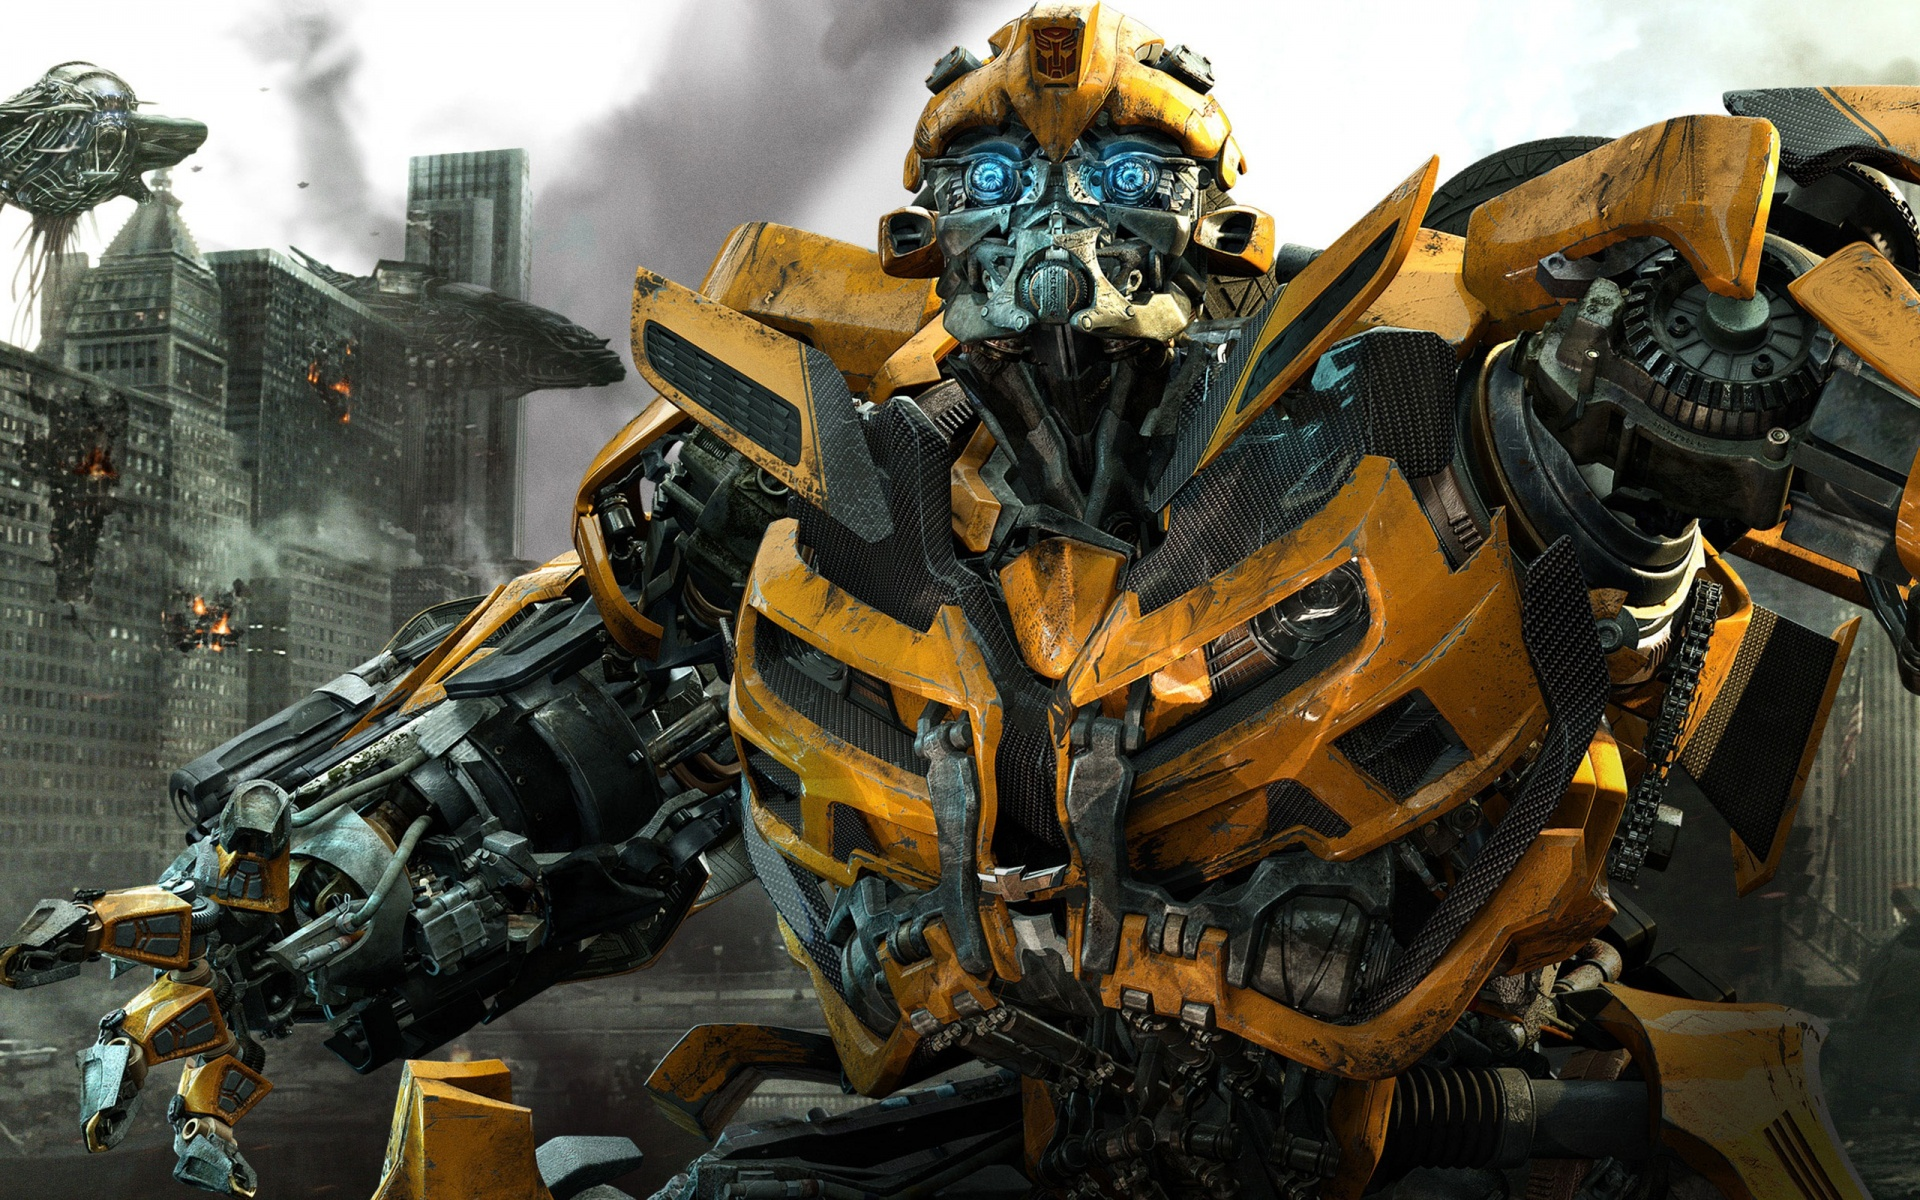 bumblebee in transformers 3 wallpapers in jpg format for free download